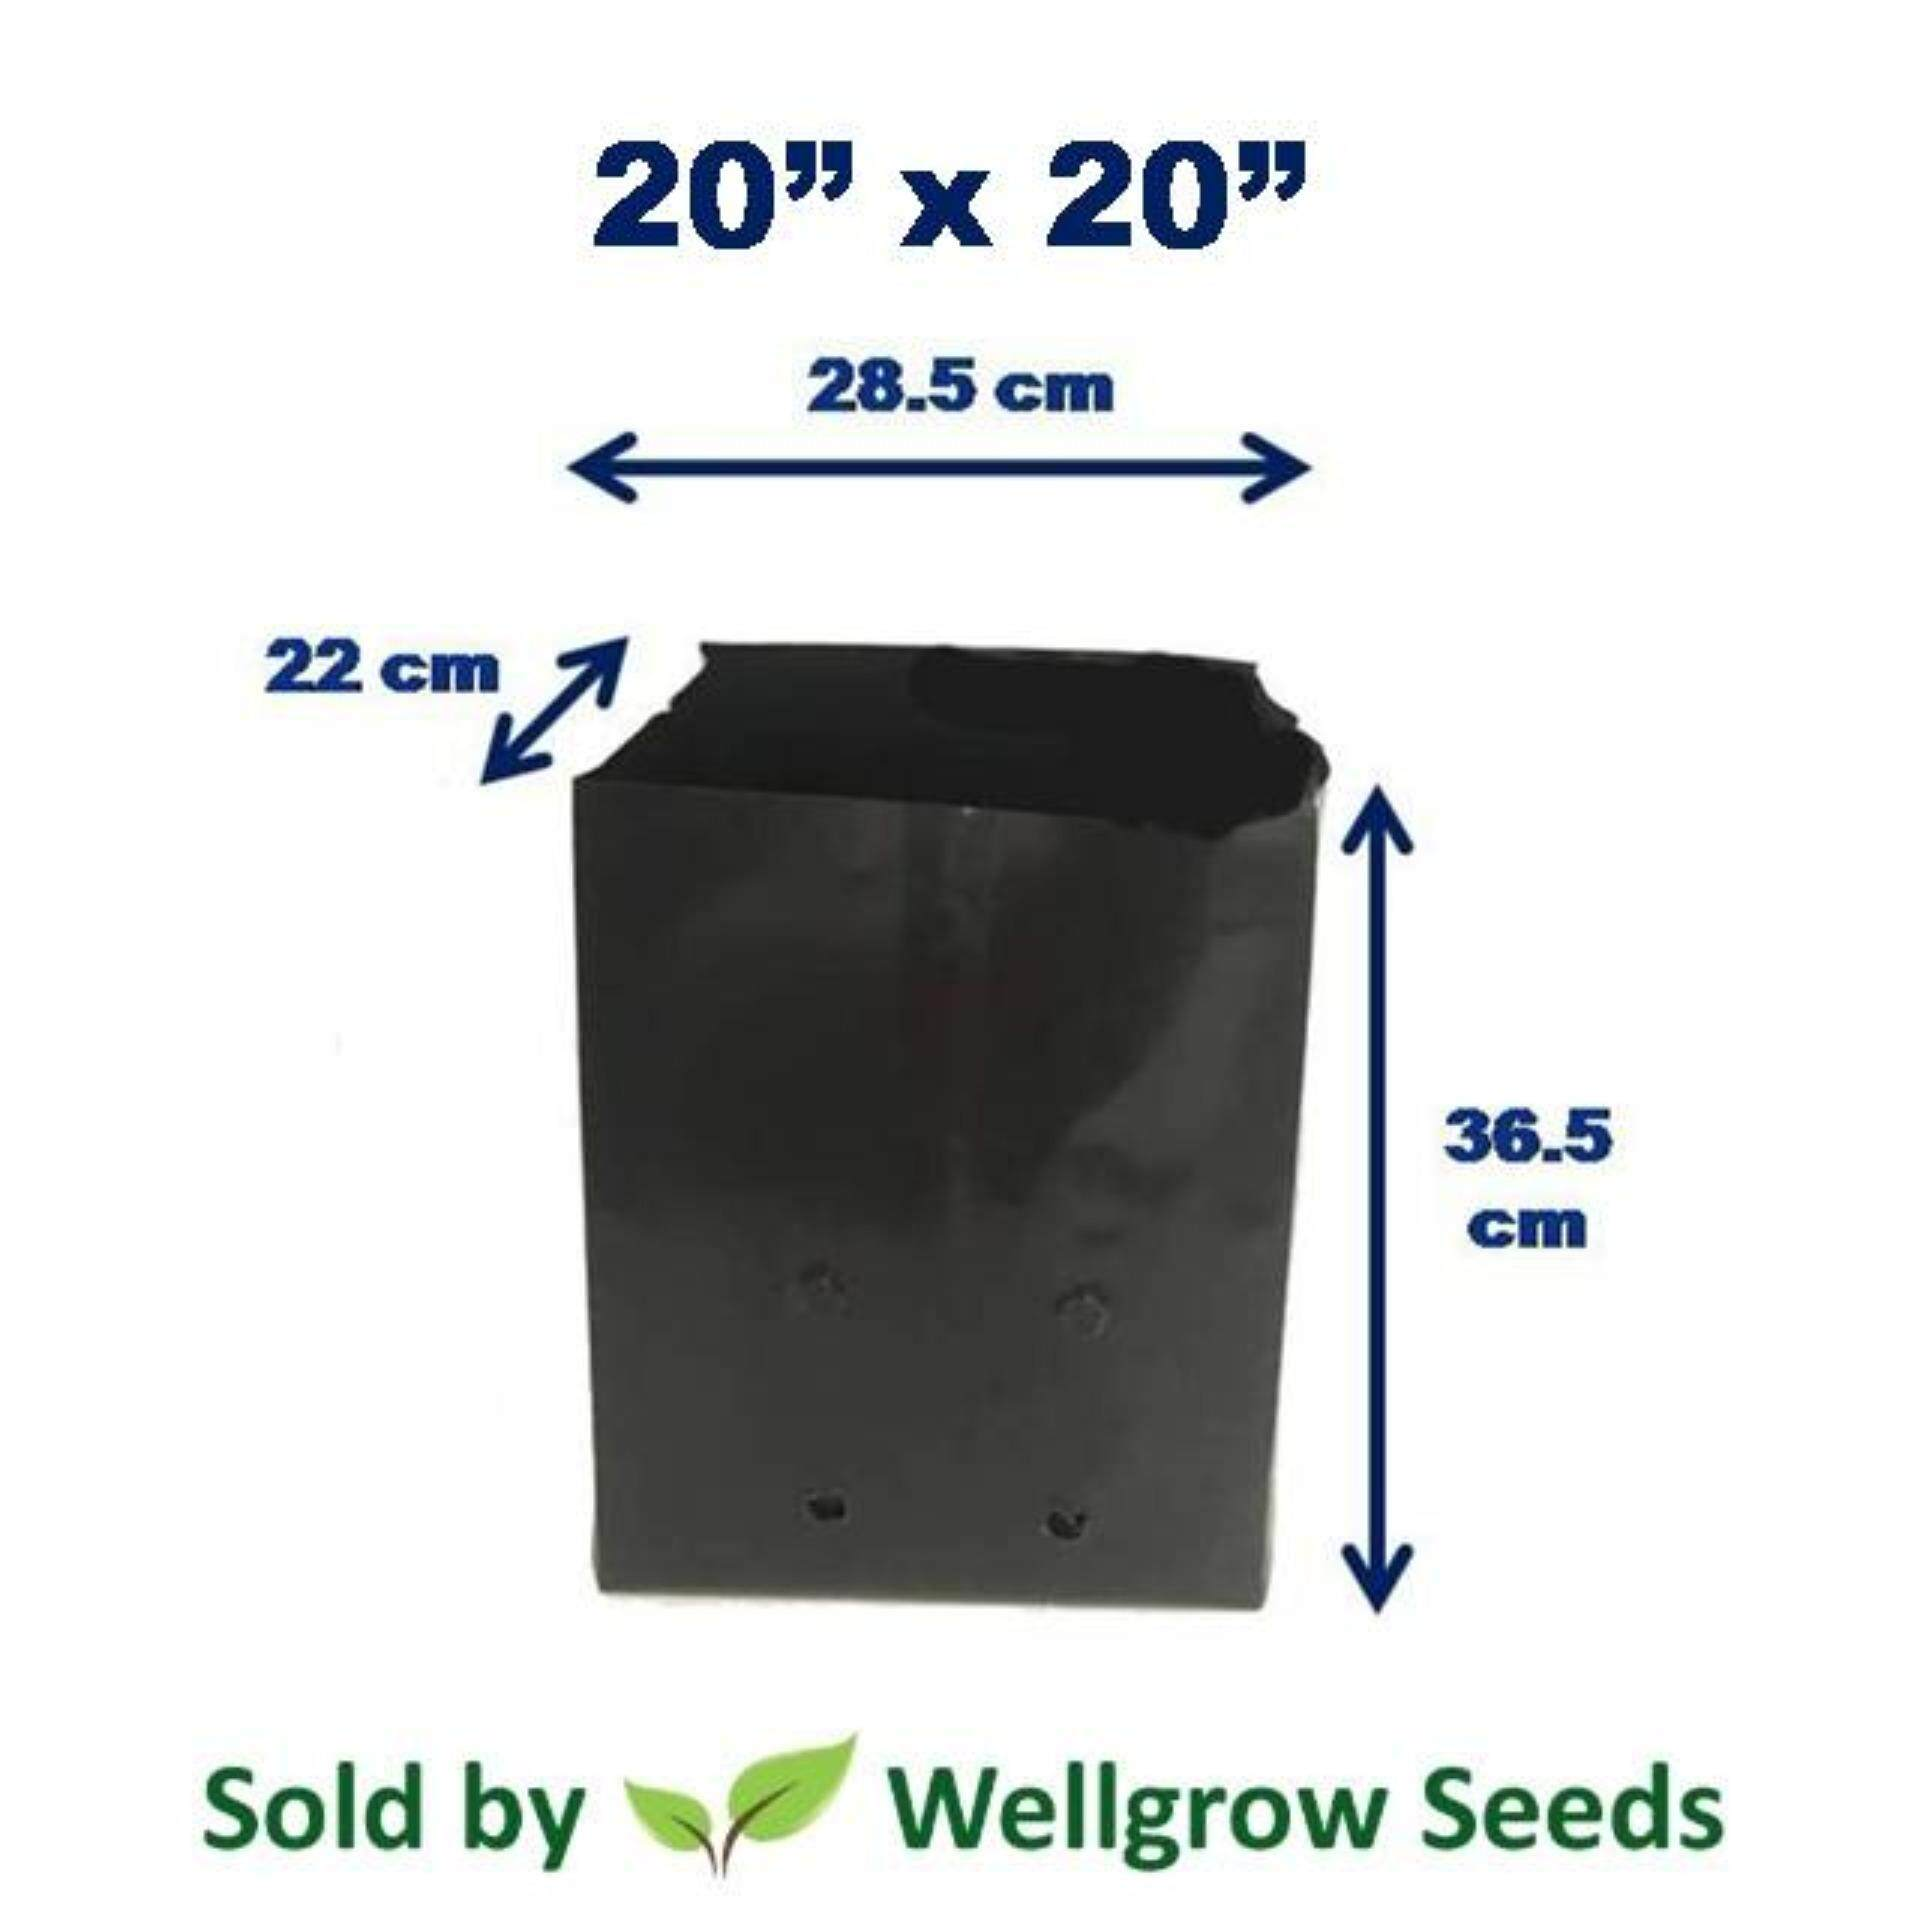 Polybag 20 x 20 (1kg) ≈8 pcs (Nursery Growing Bag Thick UV)